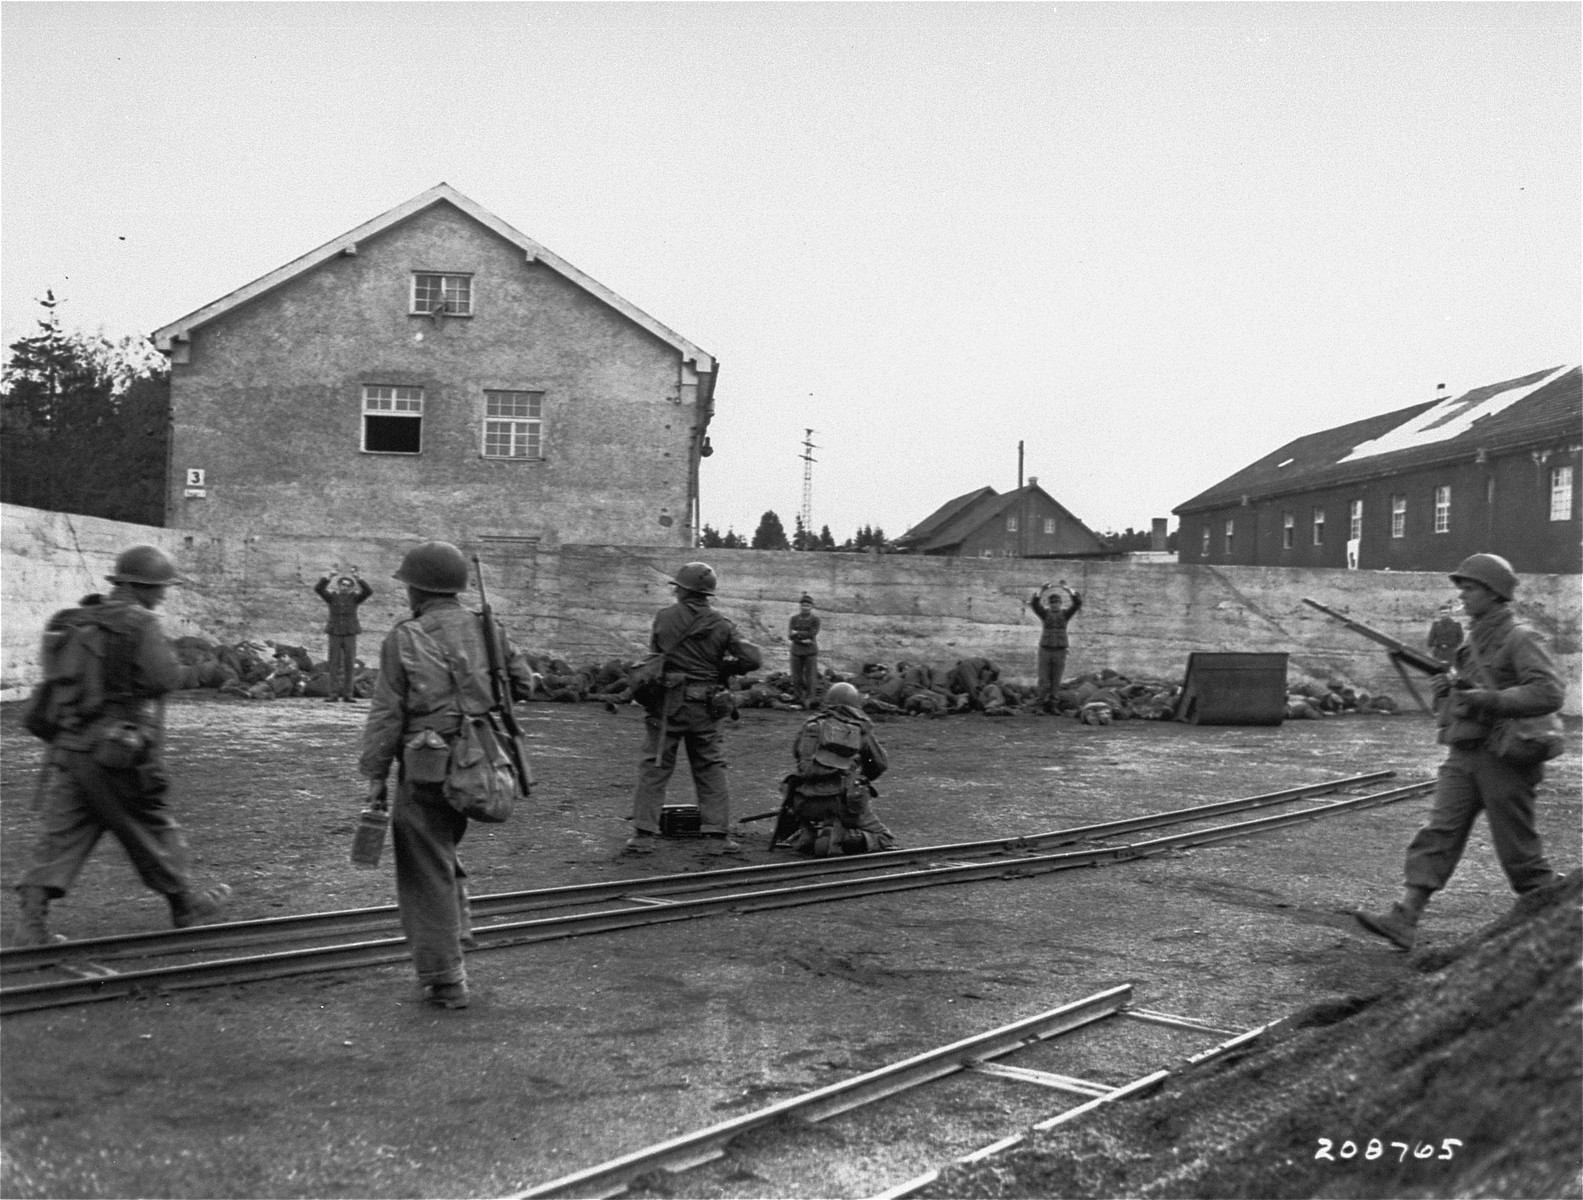 American soldiers execute SS camp guards who have been lined up against a wall during the liberation of the Dachau concentration camp.  Among those pictured is Pfc. John Lee (far right).